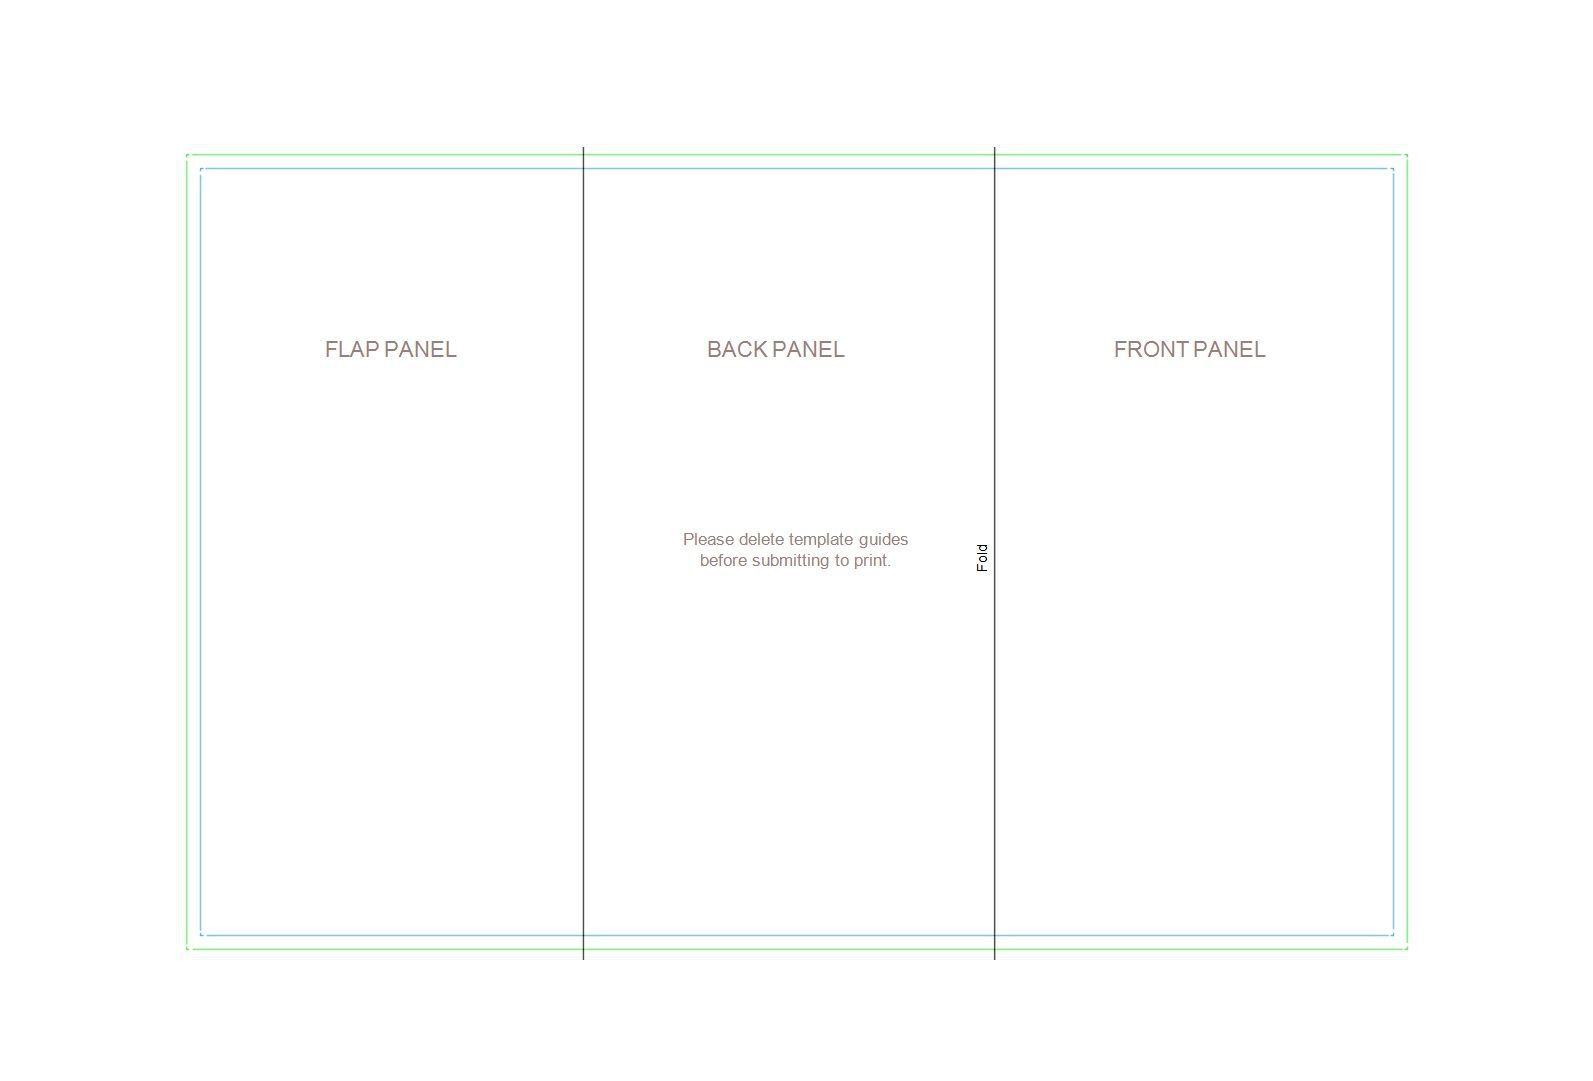 002 Awful Brochure Template For Google Doc Photo  Docs Download 3 Panel FreeFull